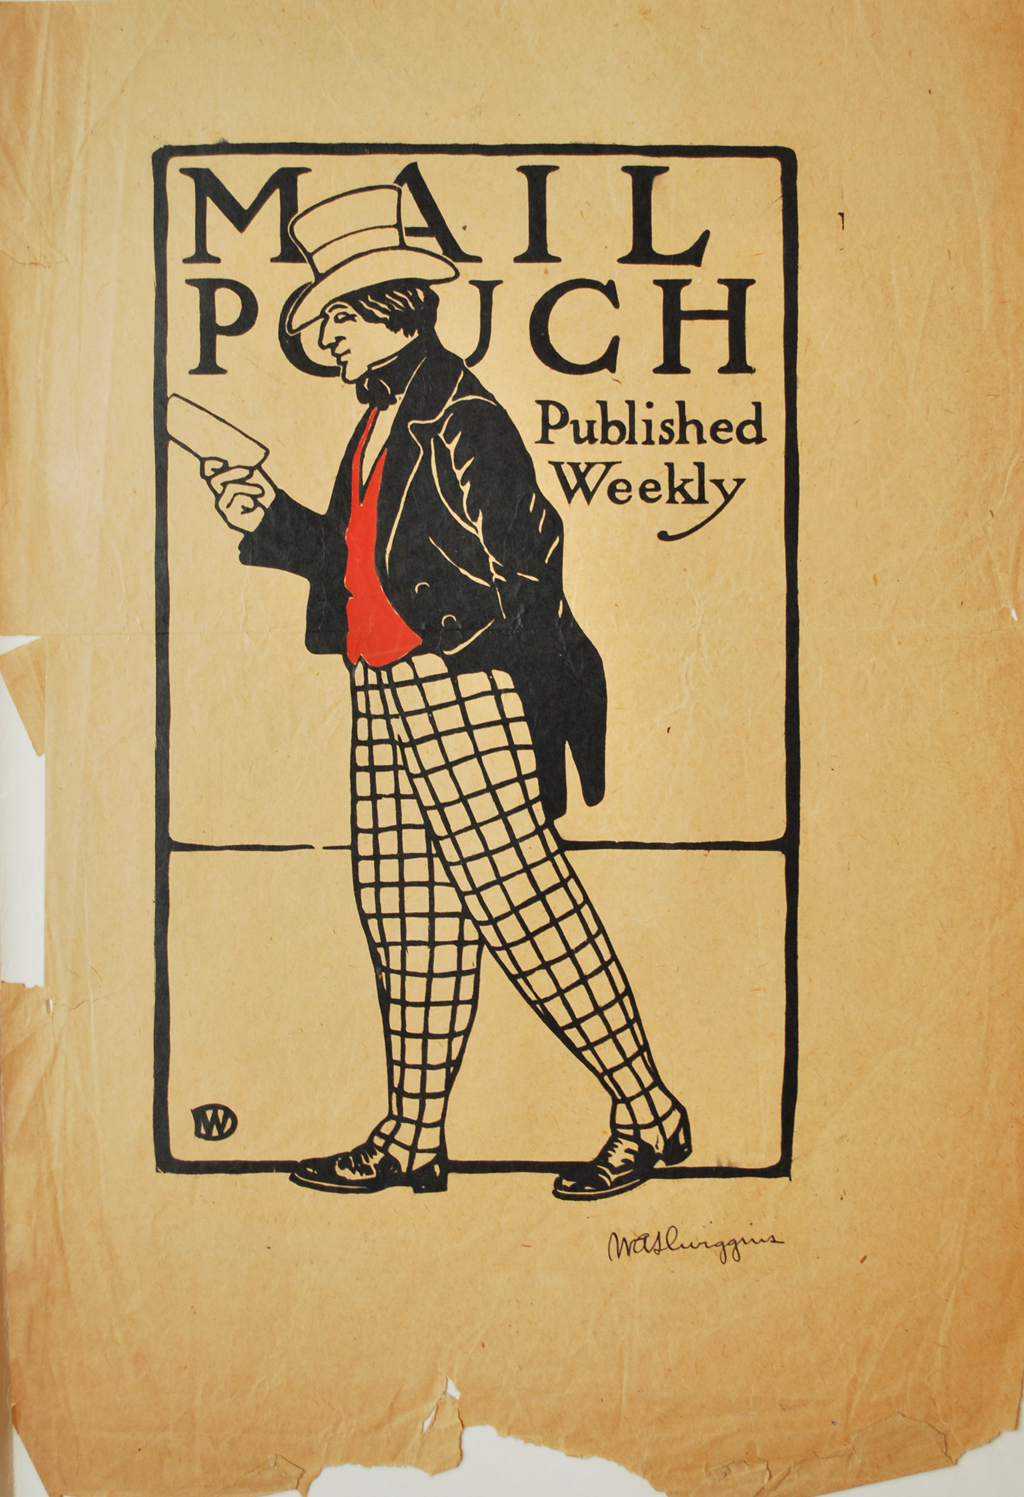 Mail Pouch poster by W.A. Dwiggins, c.1900. Photograph courtesy of Eric Frazier and the Library of Congress.